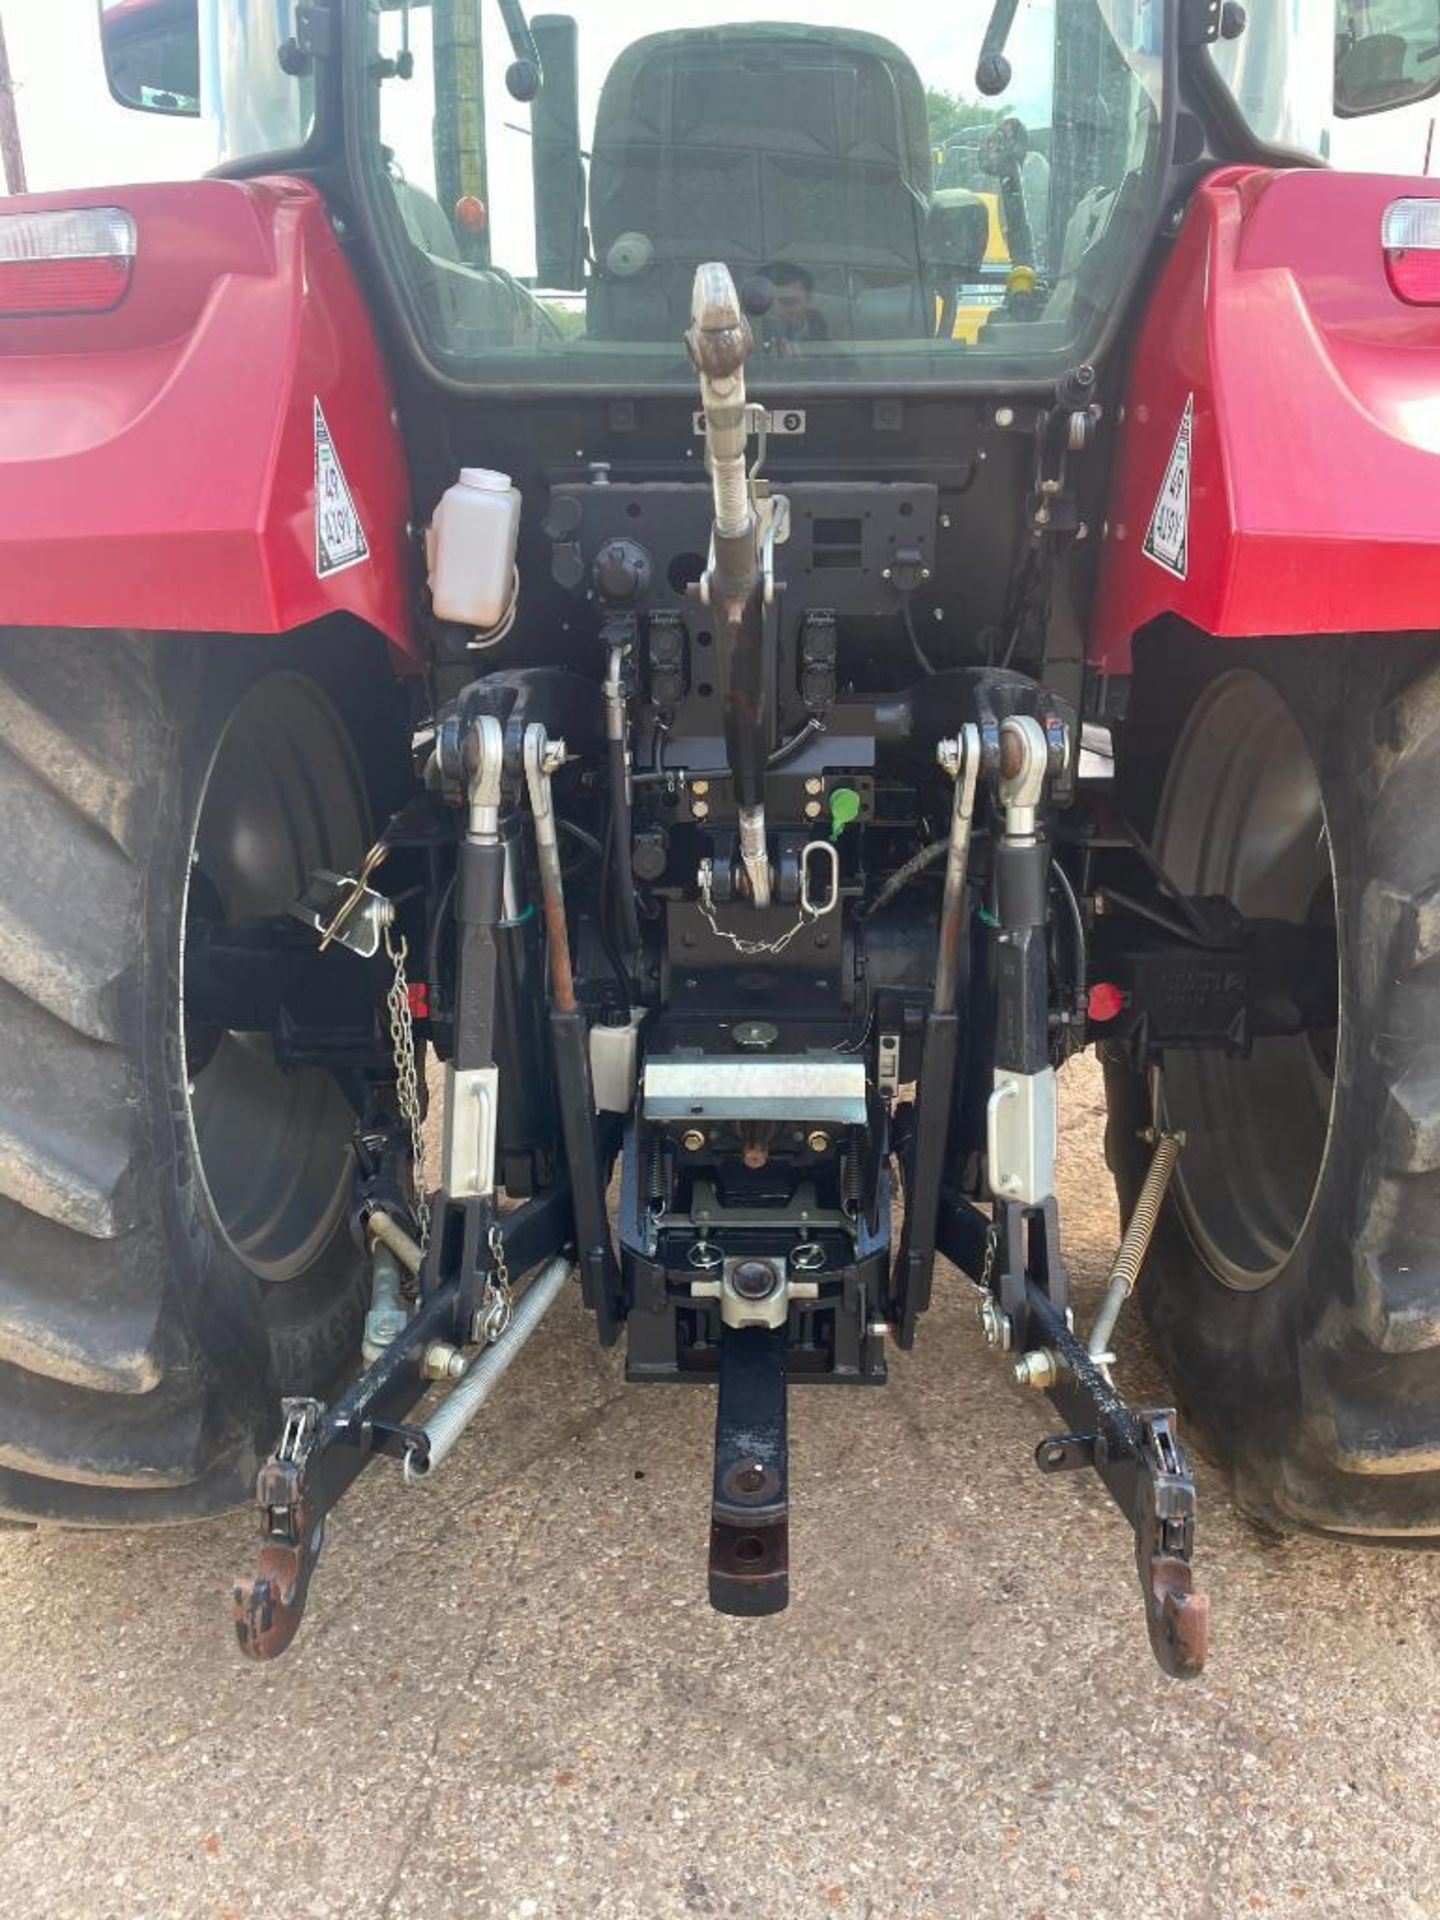 2014 Case IH Farmall 115U PRO 40Kph 4wd tractor with 2 spools, PUH on 440/65R24 front and 540/65R34 - Image 4 of 10